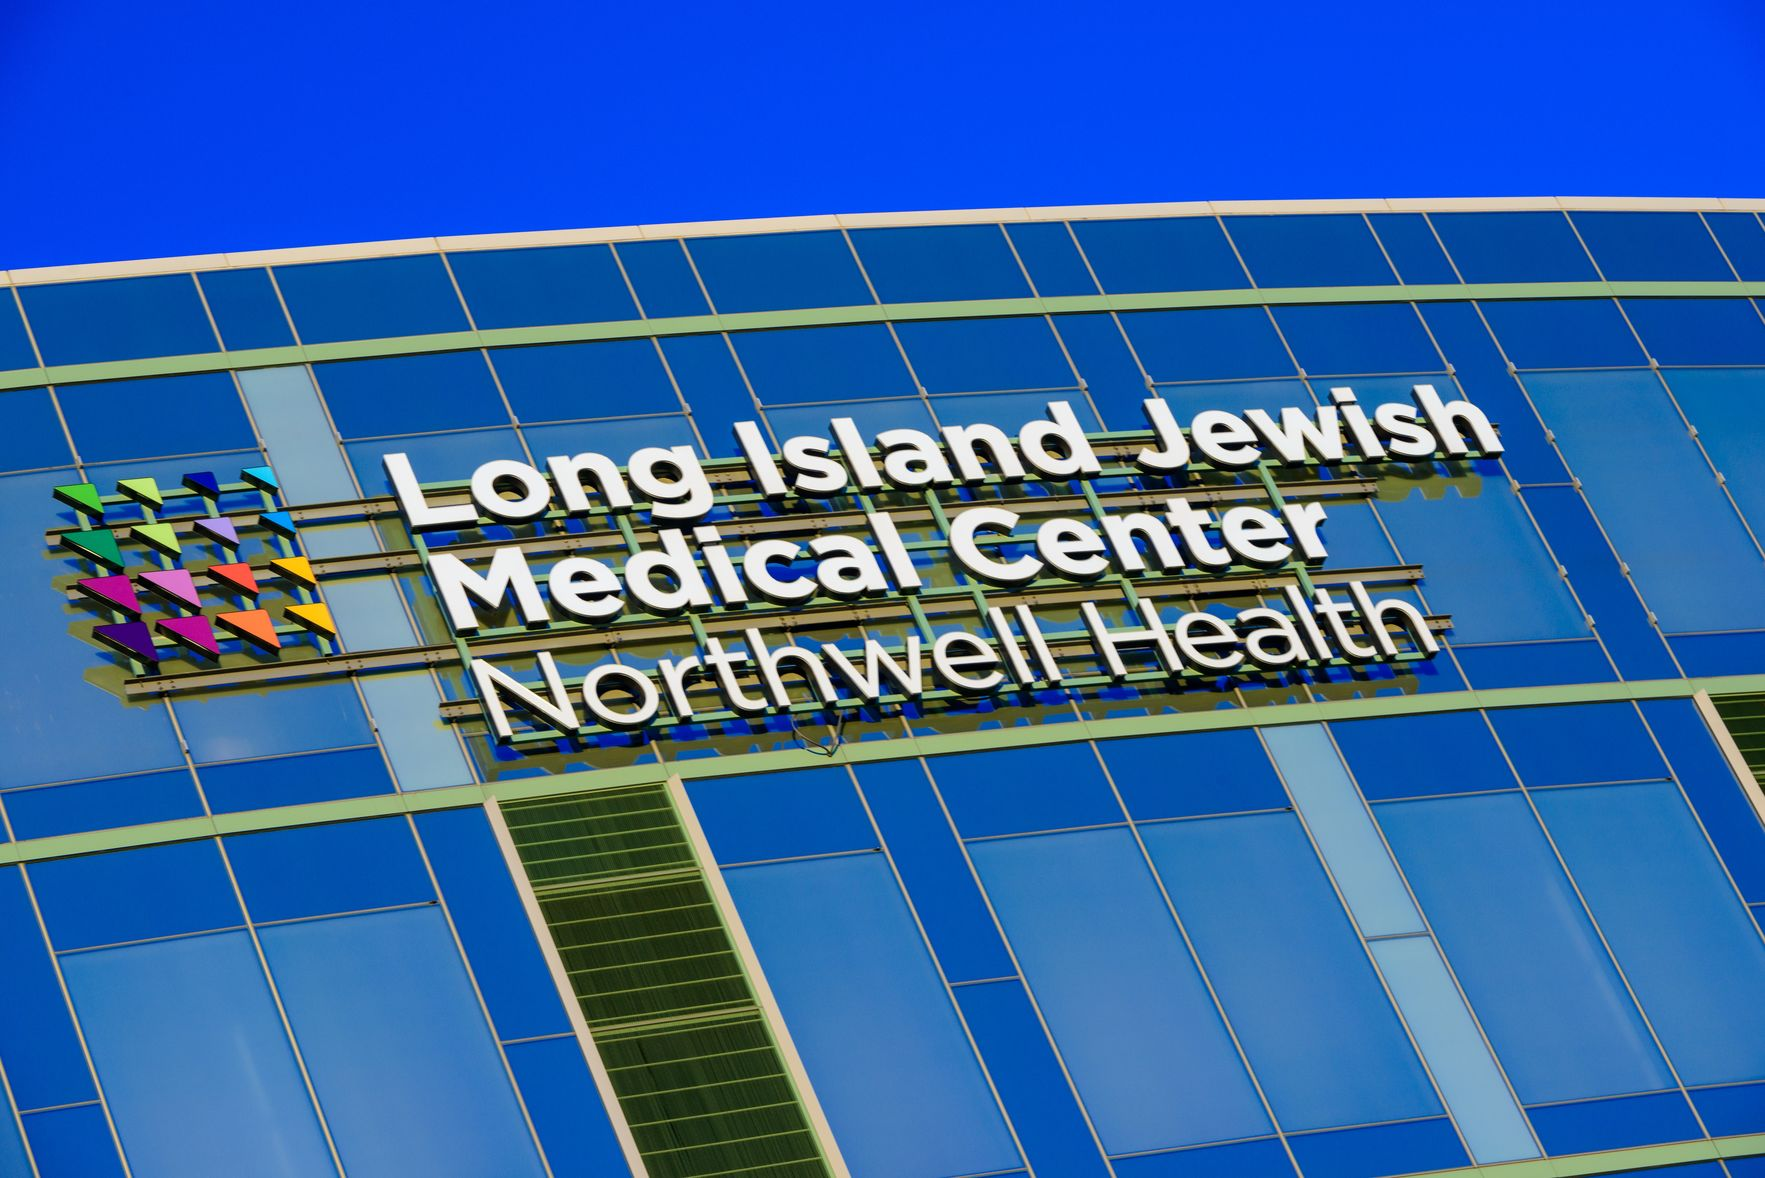 An external image of Long Island Jewish Medical Center